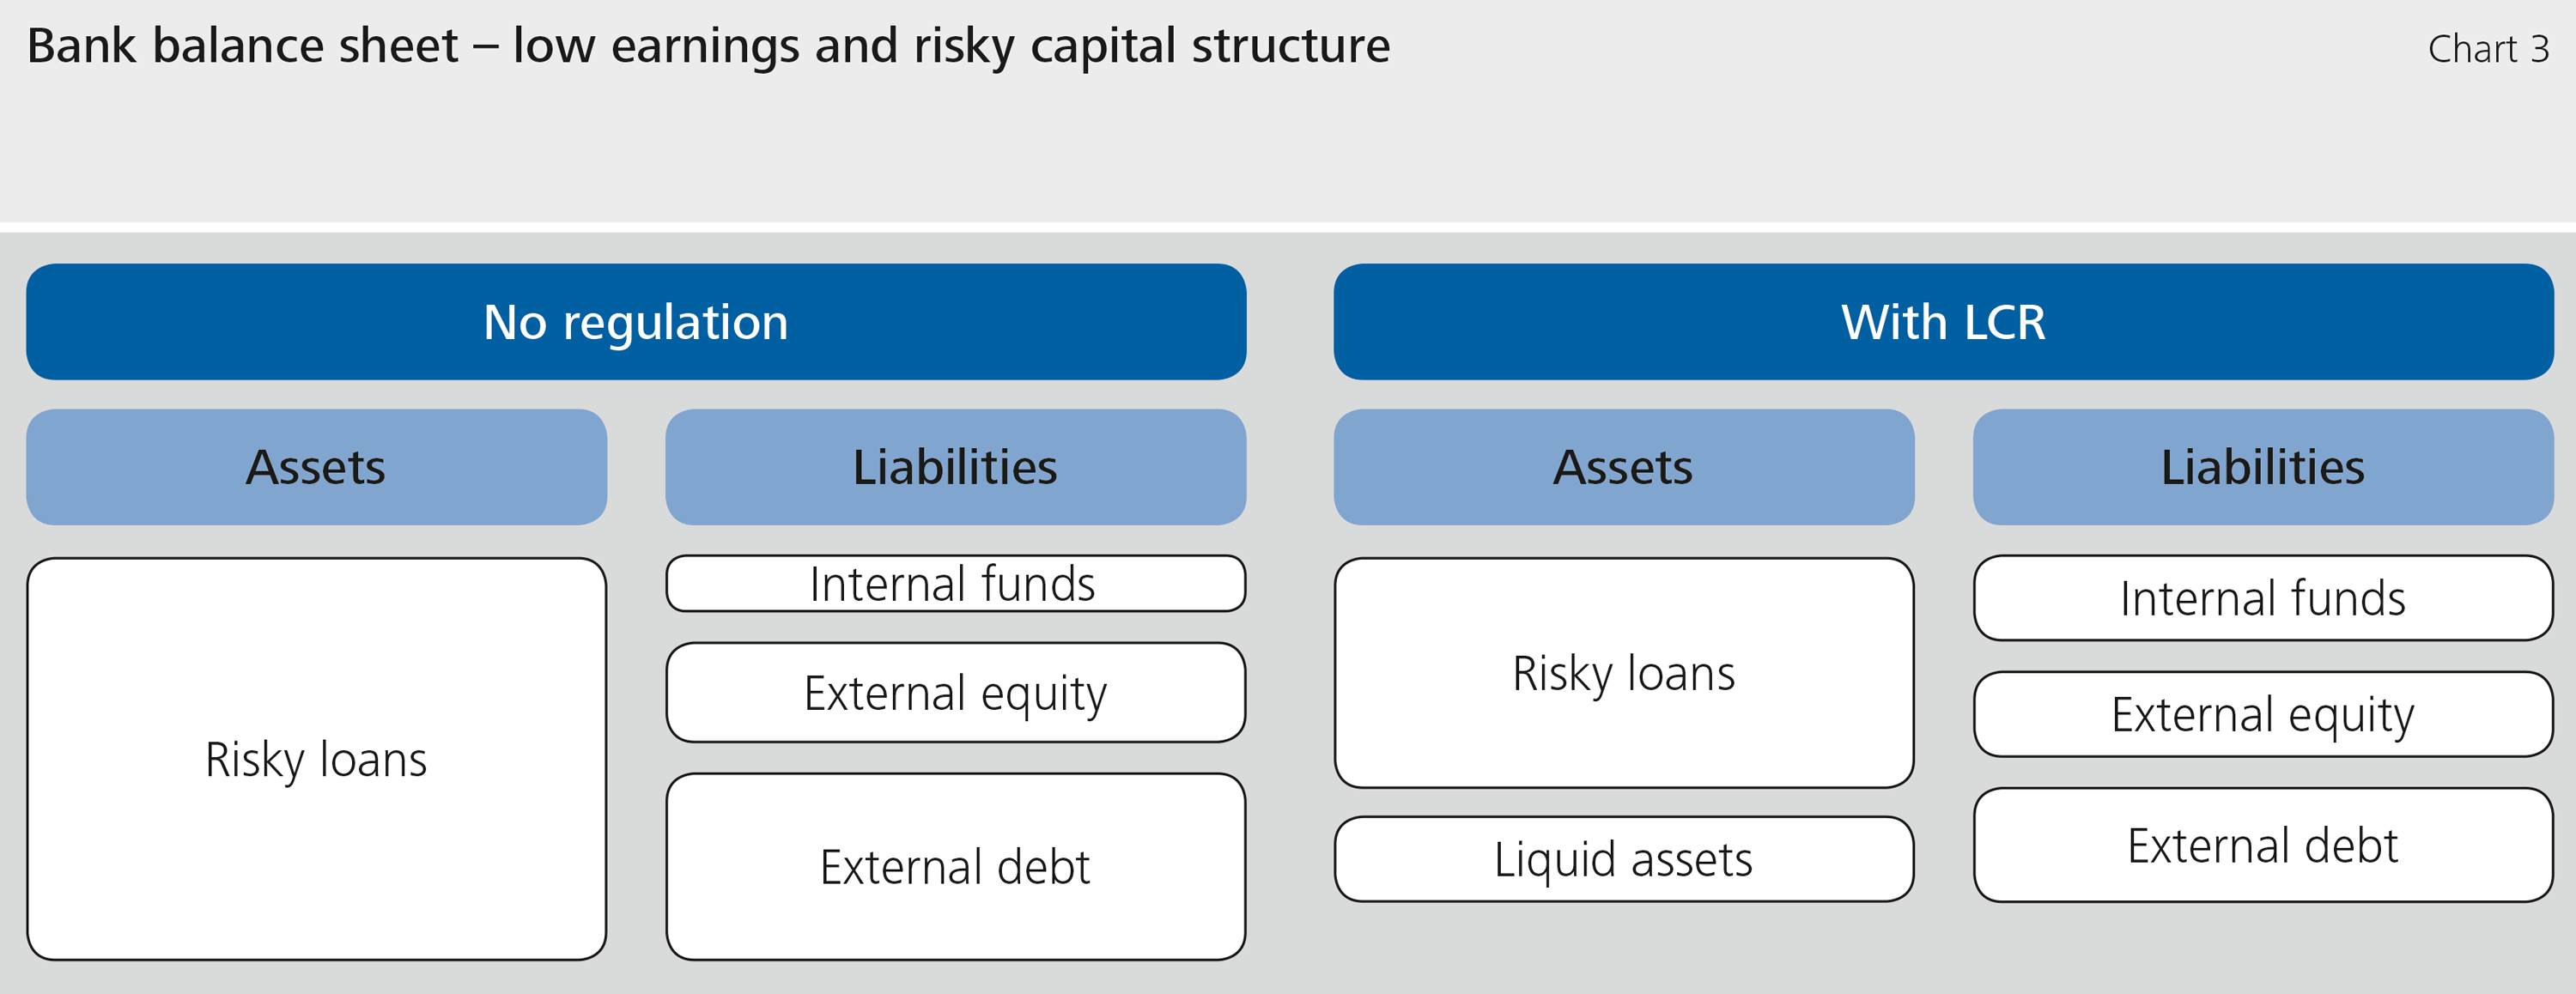 Chart 3: Bank balance sheet – low earnings and risky capital structure